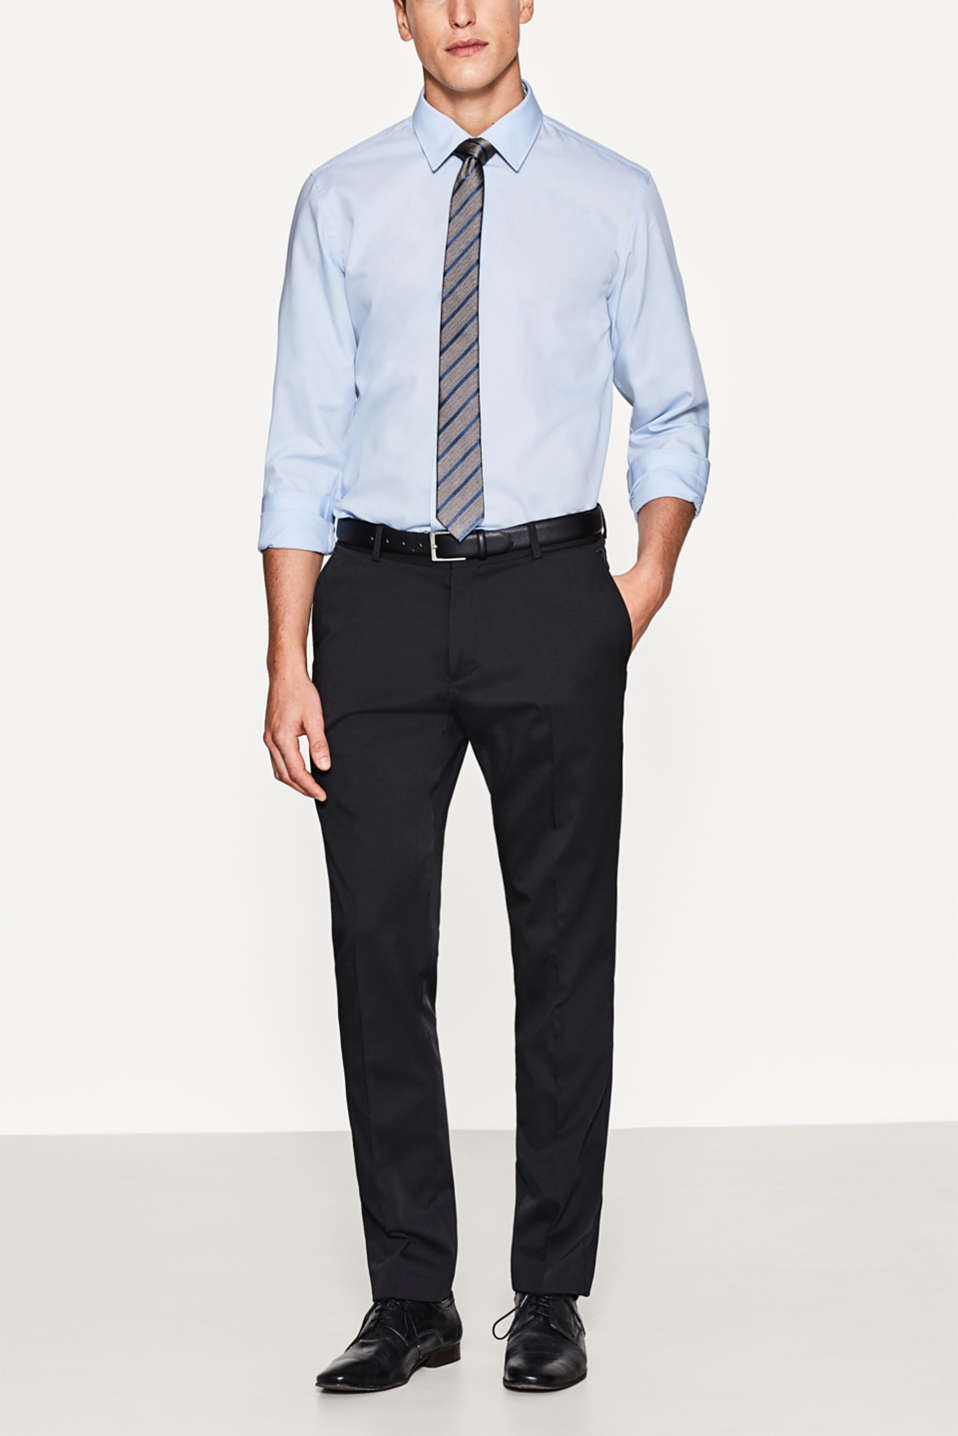 Esprit - Classic suit trousers + stretch for comfort